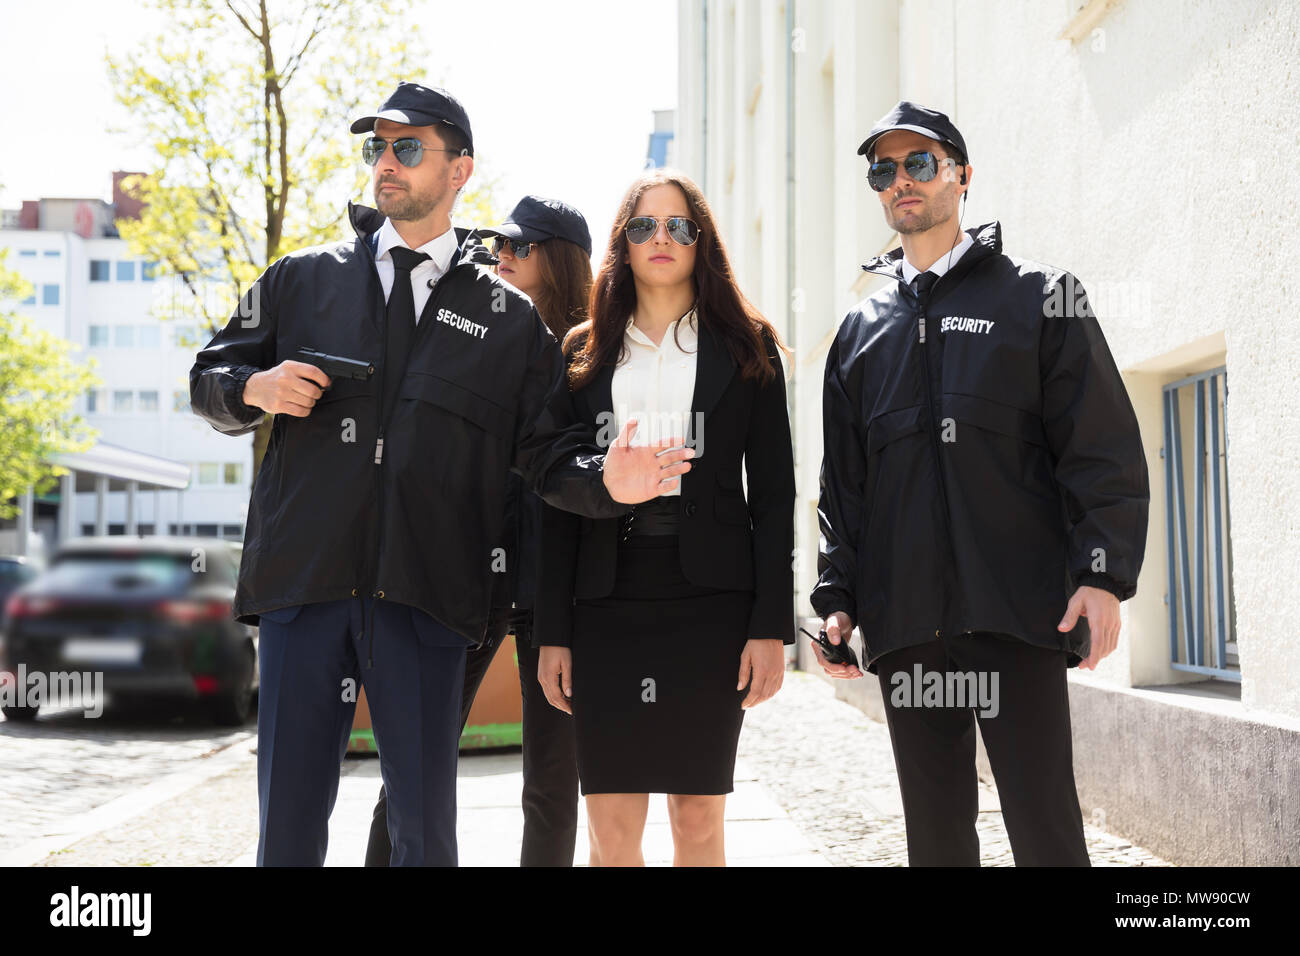 Portrait Of Beautiful Young Businesswoman With Bodyguards Standing On Sidewalk - Stock Image